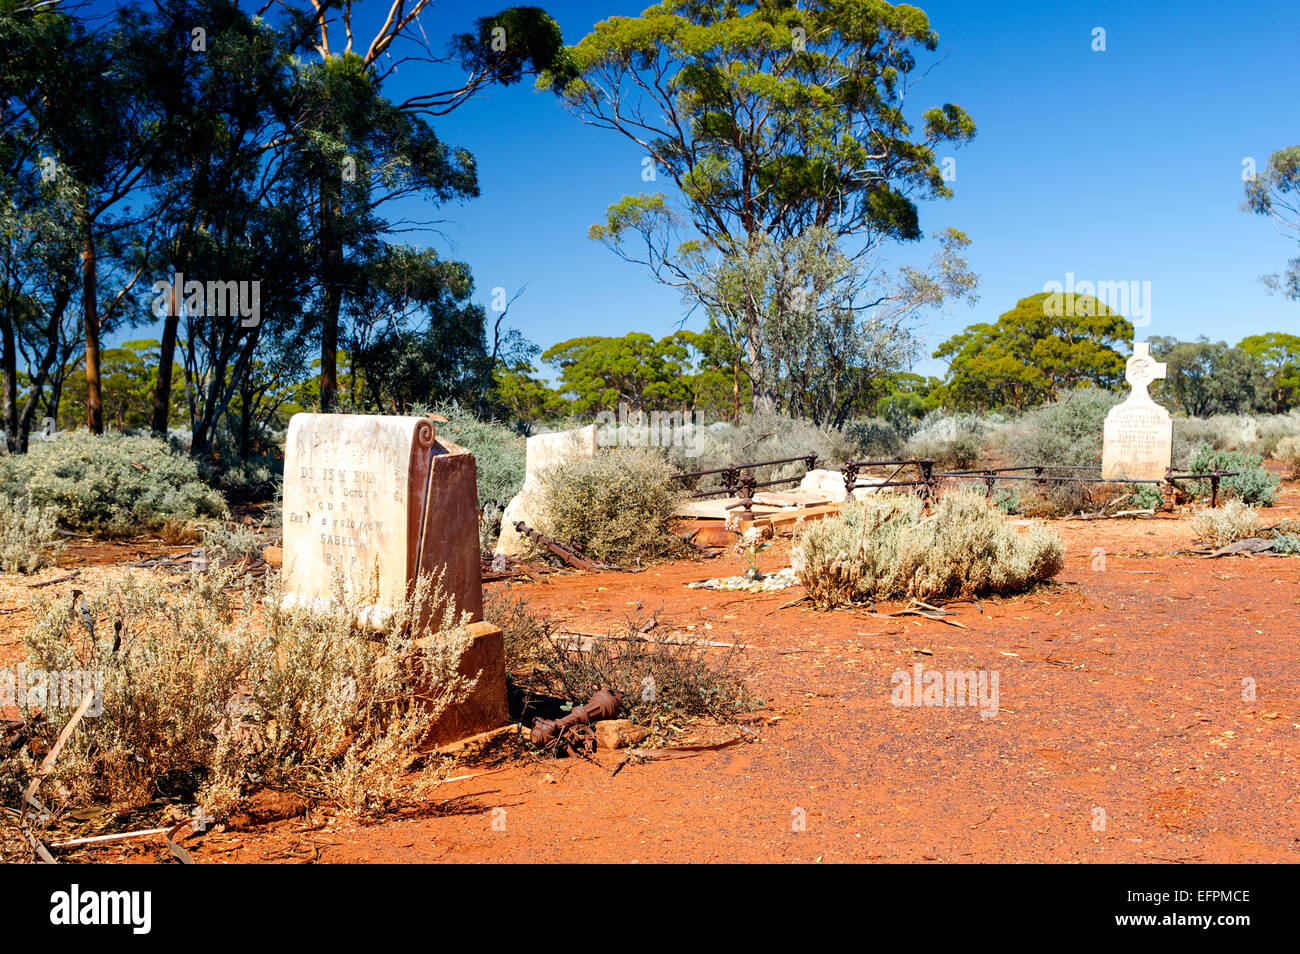 Old graves and headstones in an early settler cemetery at Kanowna, about 20km east of Kalgoorlie, Western Australia. Stock Photo